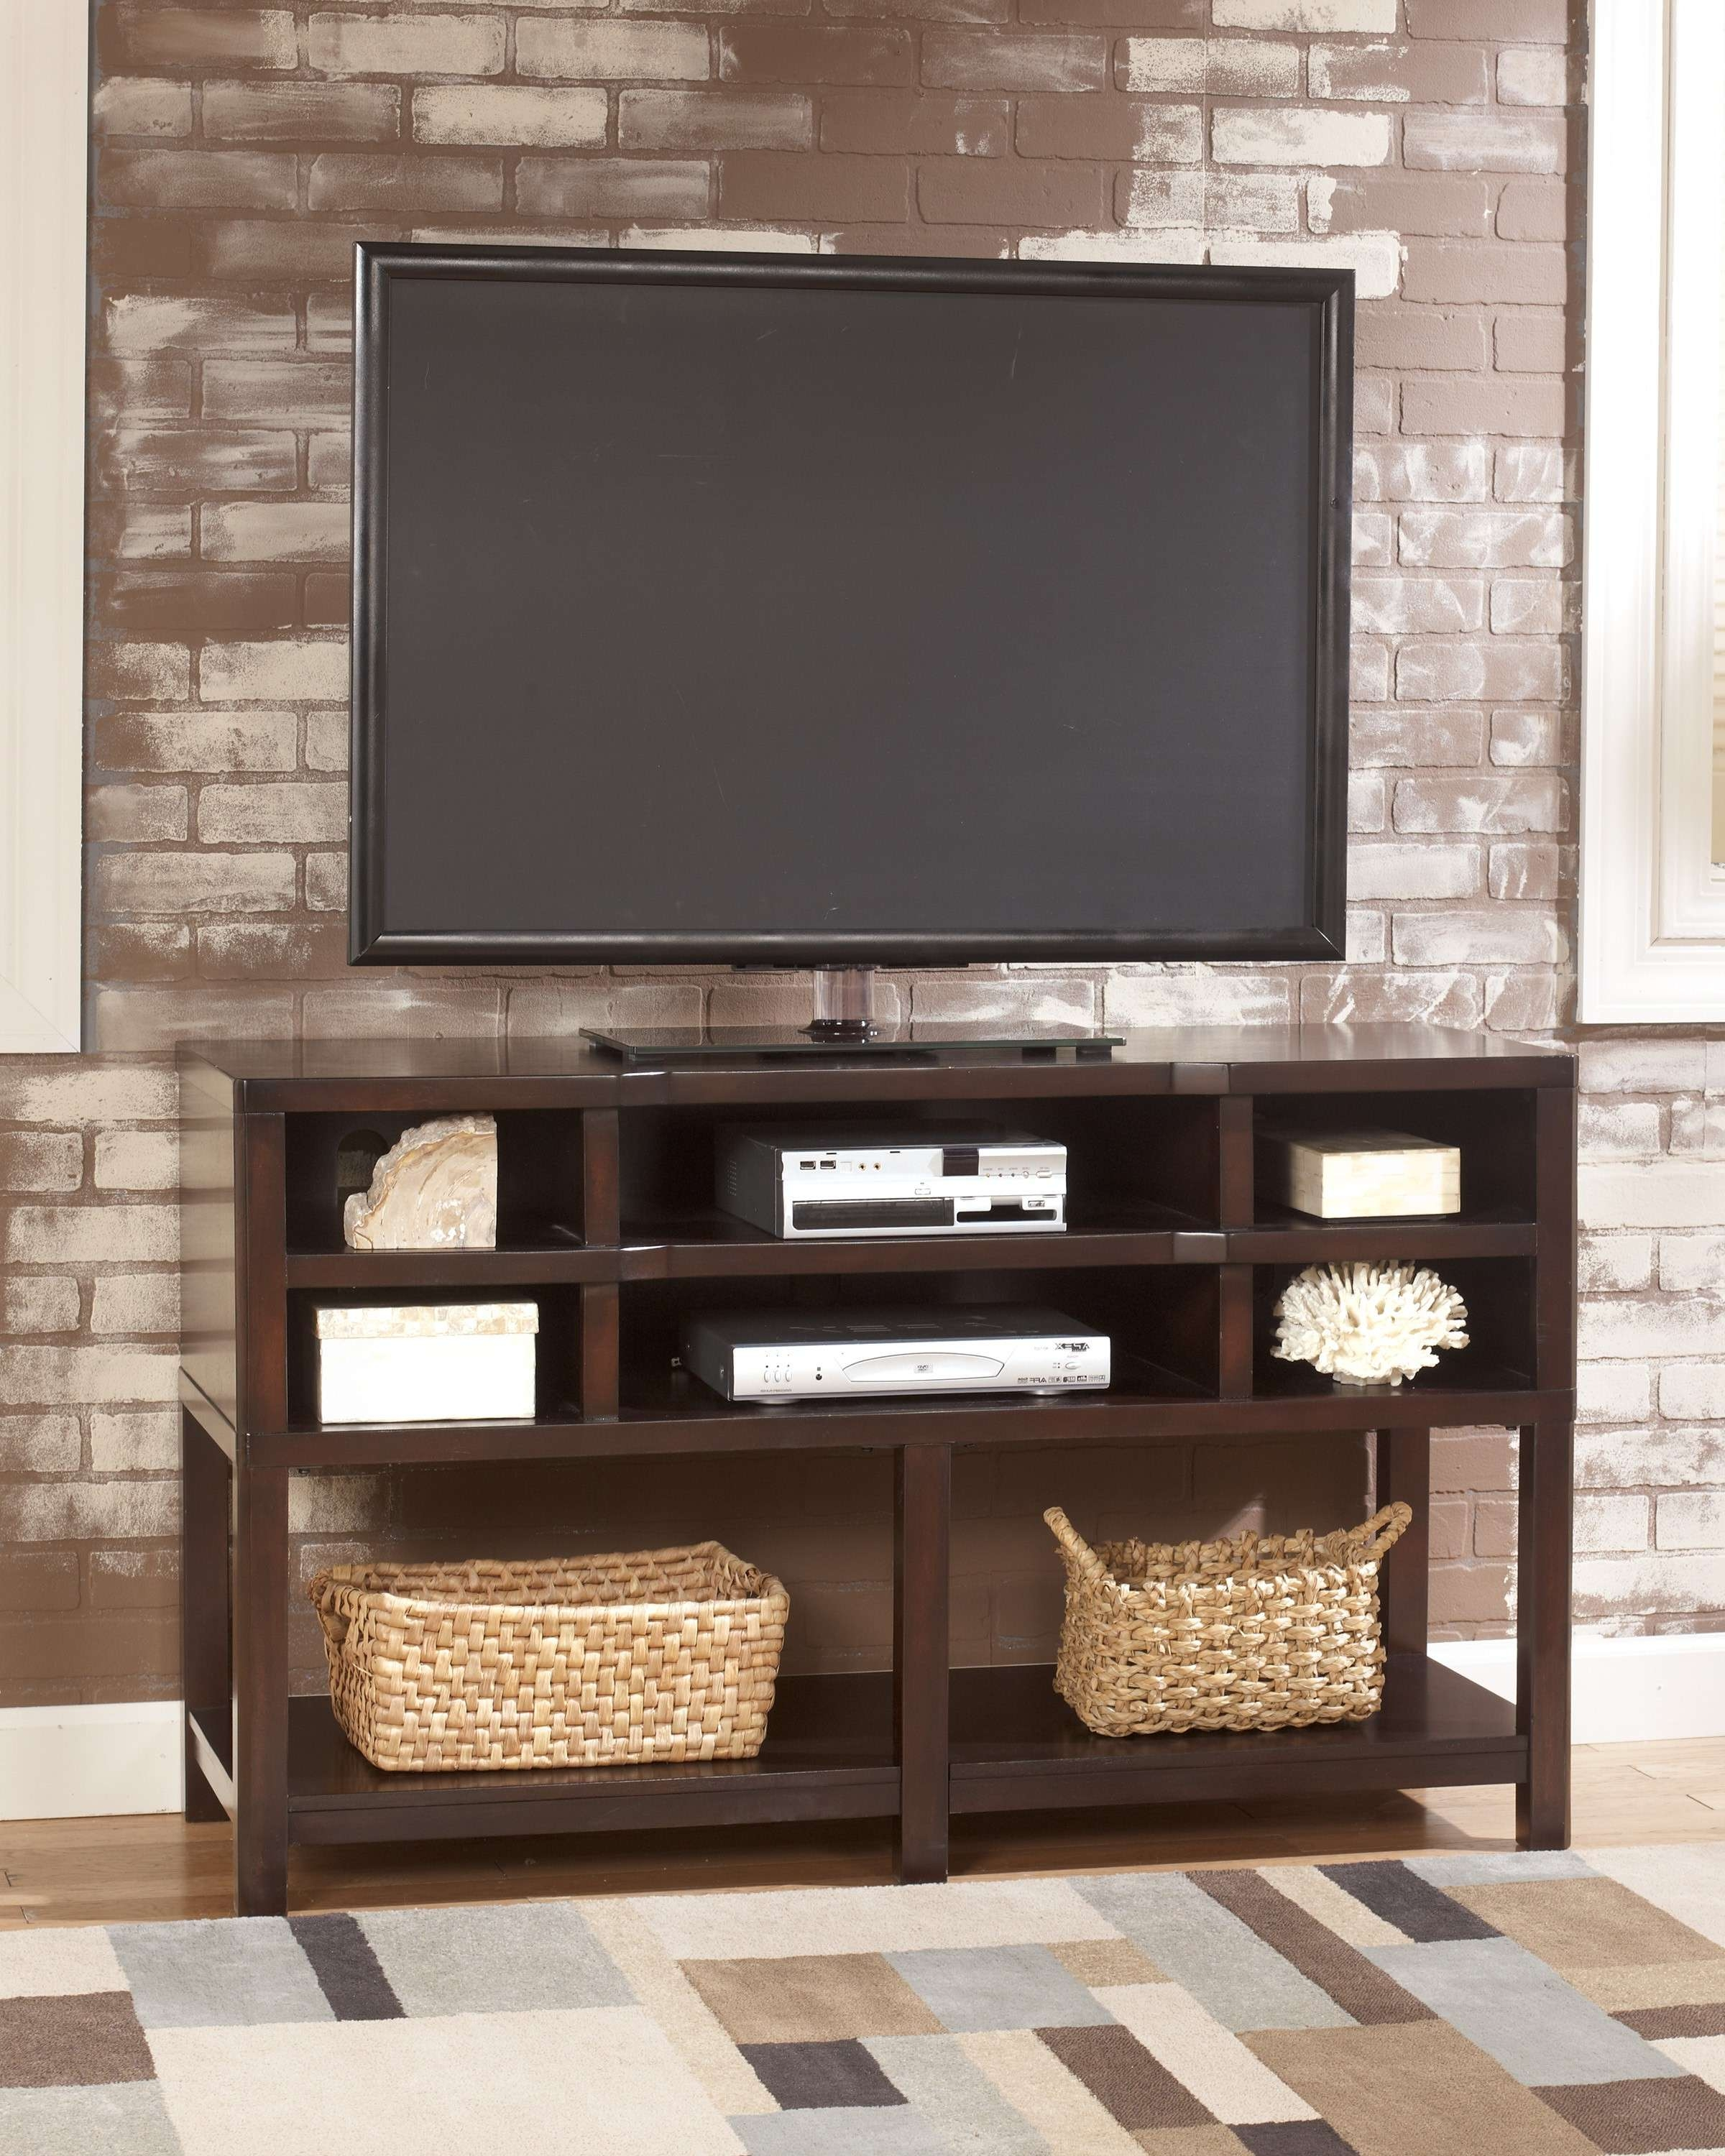 Simple Modern Oak Flat Screen Tv Stand Console Table With With Regard To Modern Tv Cabinets For Flat Screens (View 15 of 20)